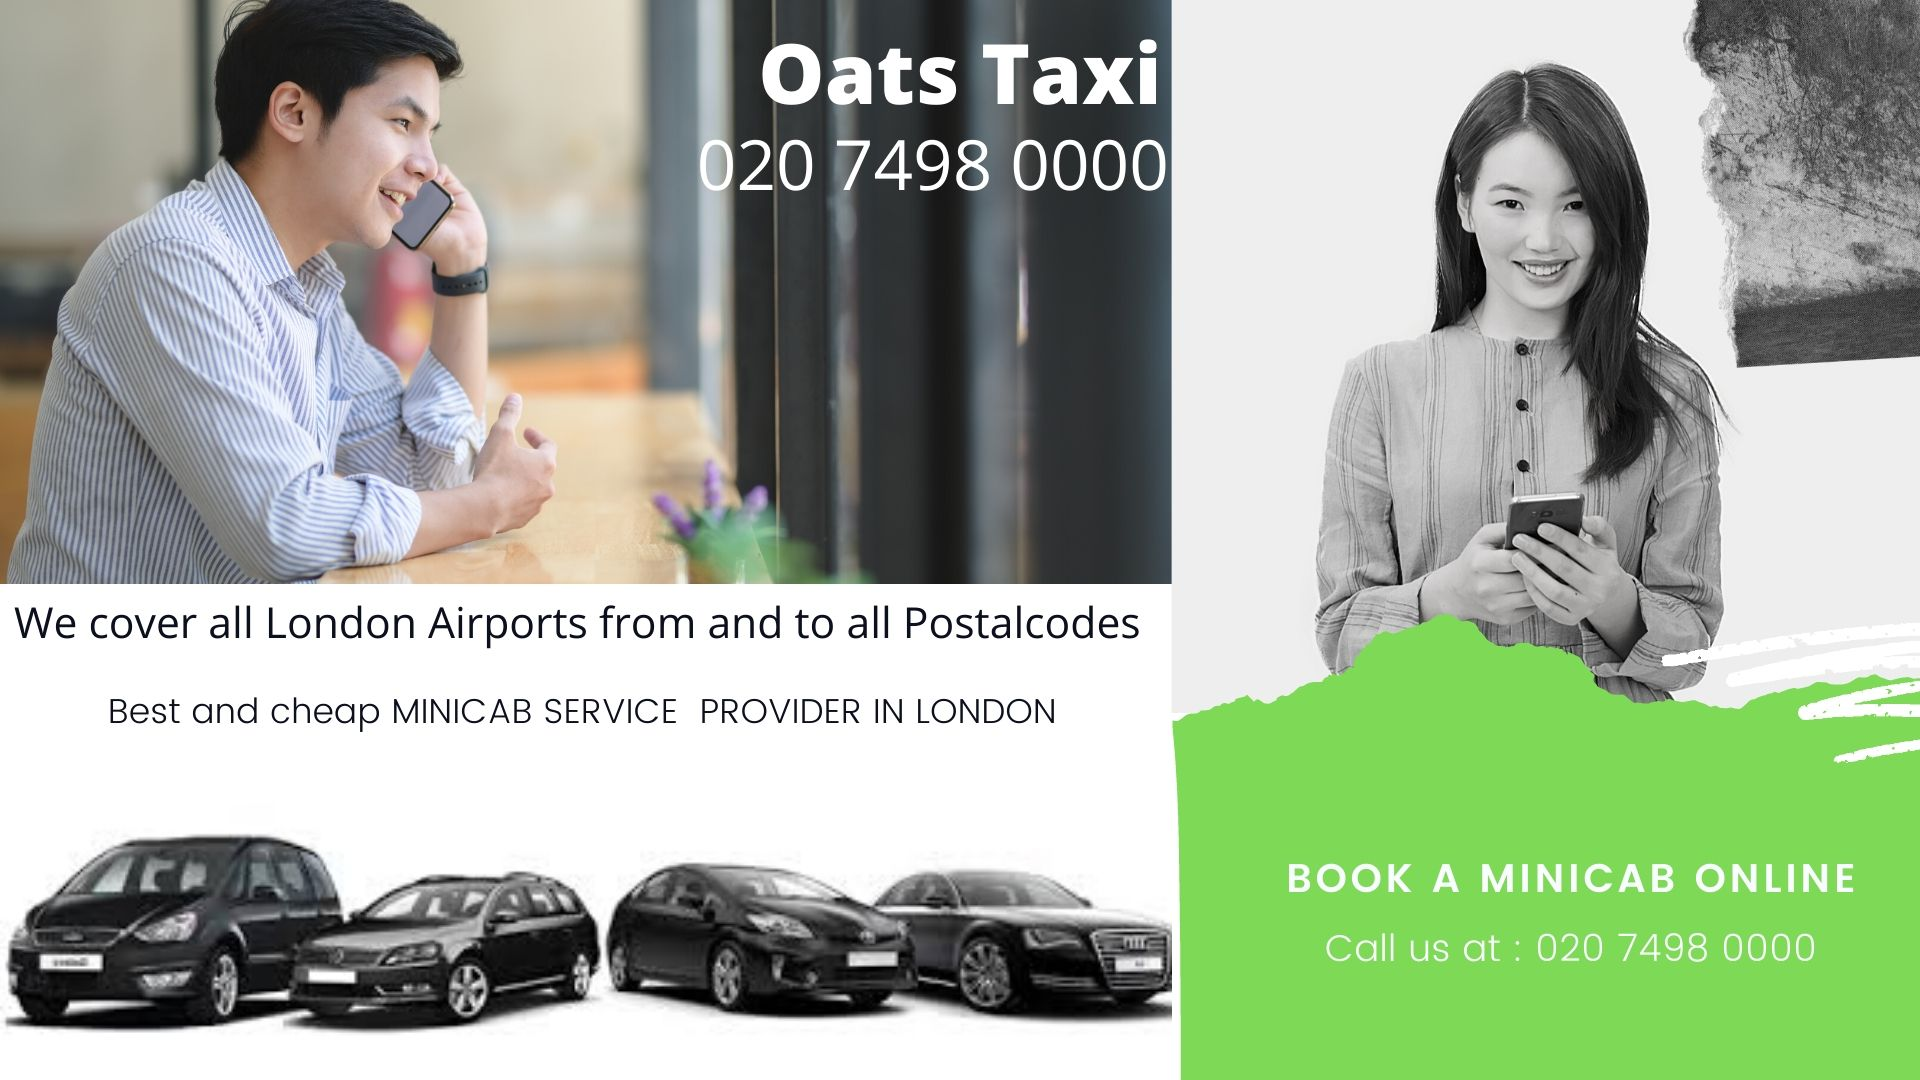 Nearest Taxi Office in Streatham Park | Gatwick Airport | Call now : 02074980000